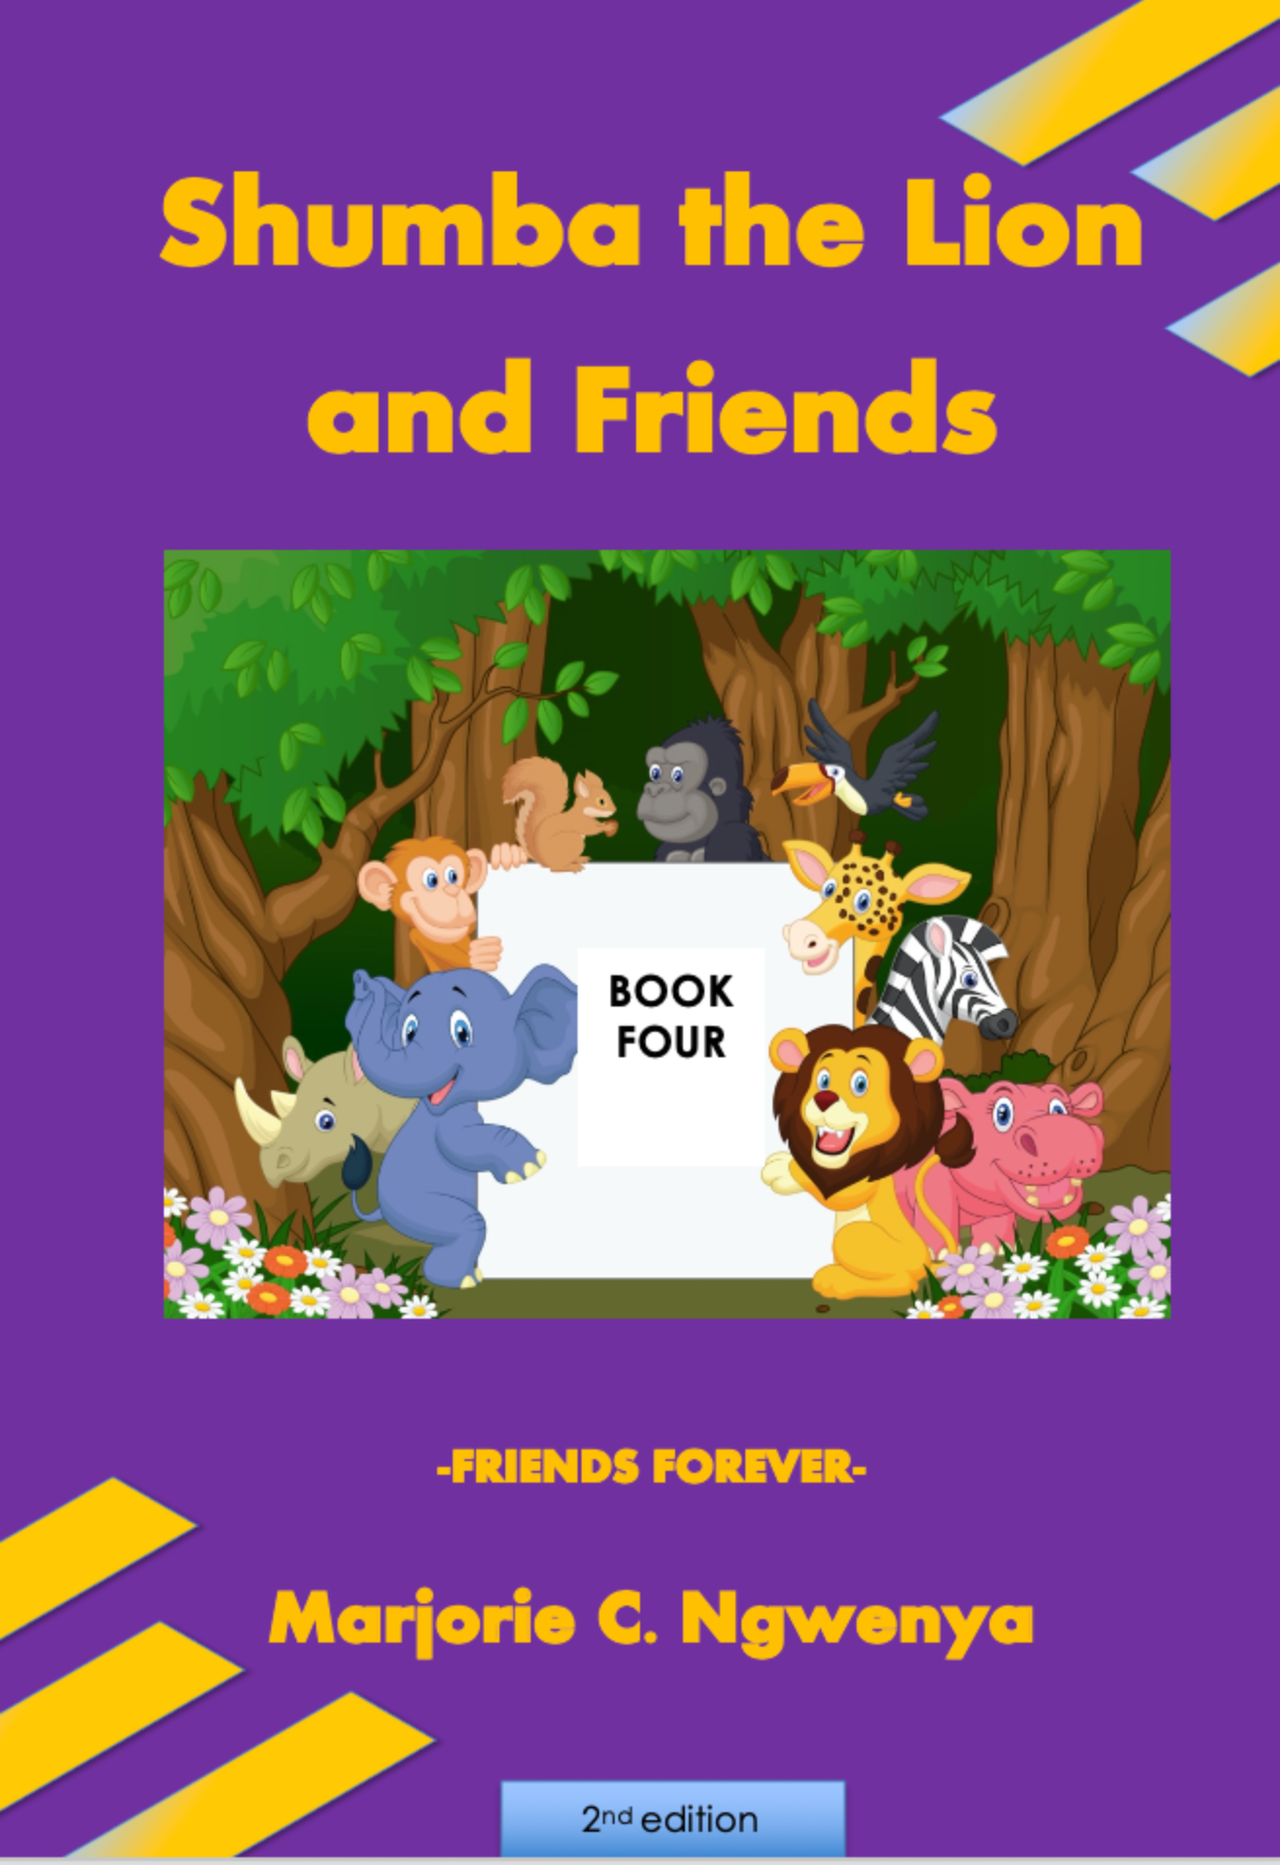 Shumba the Lion and Friends: Book 4 - Friends Forever